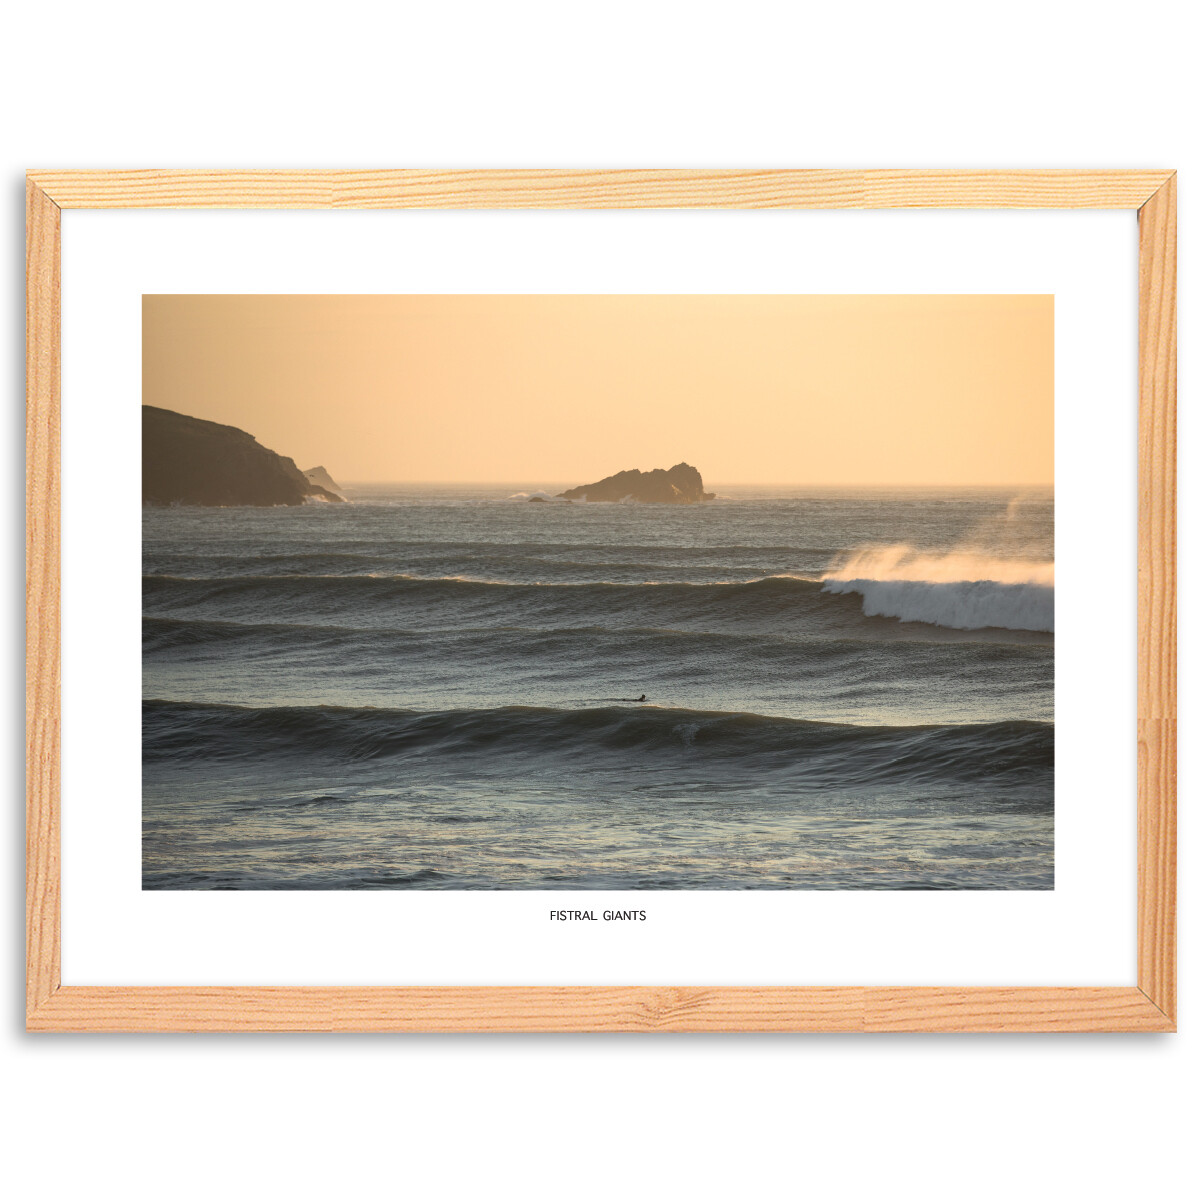 Fistral Giants